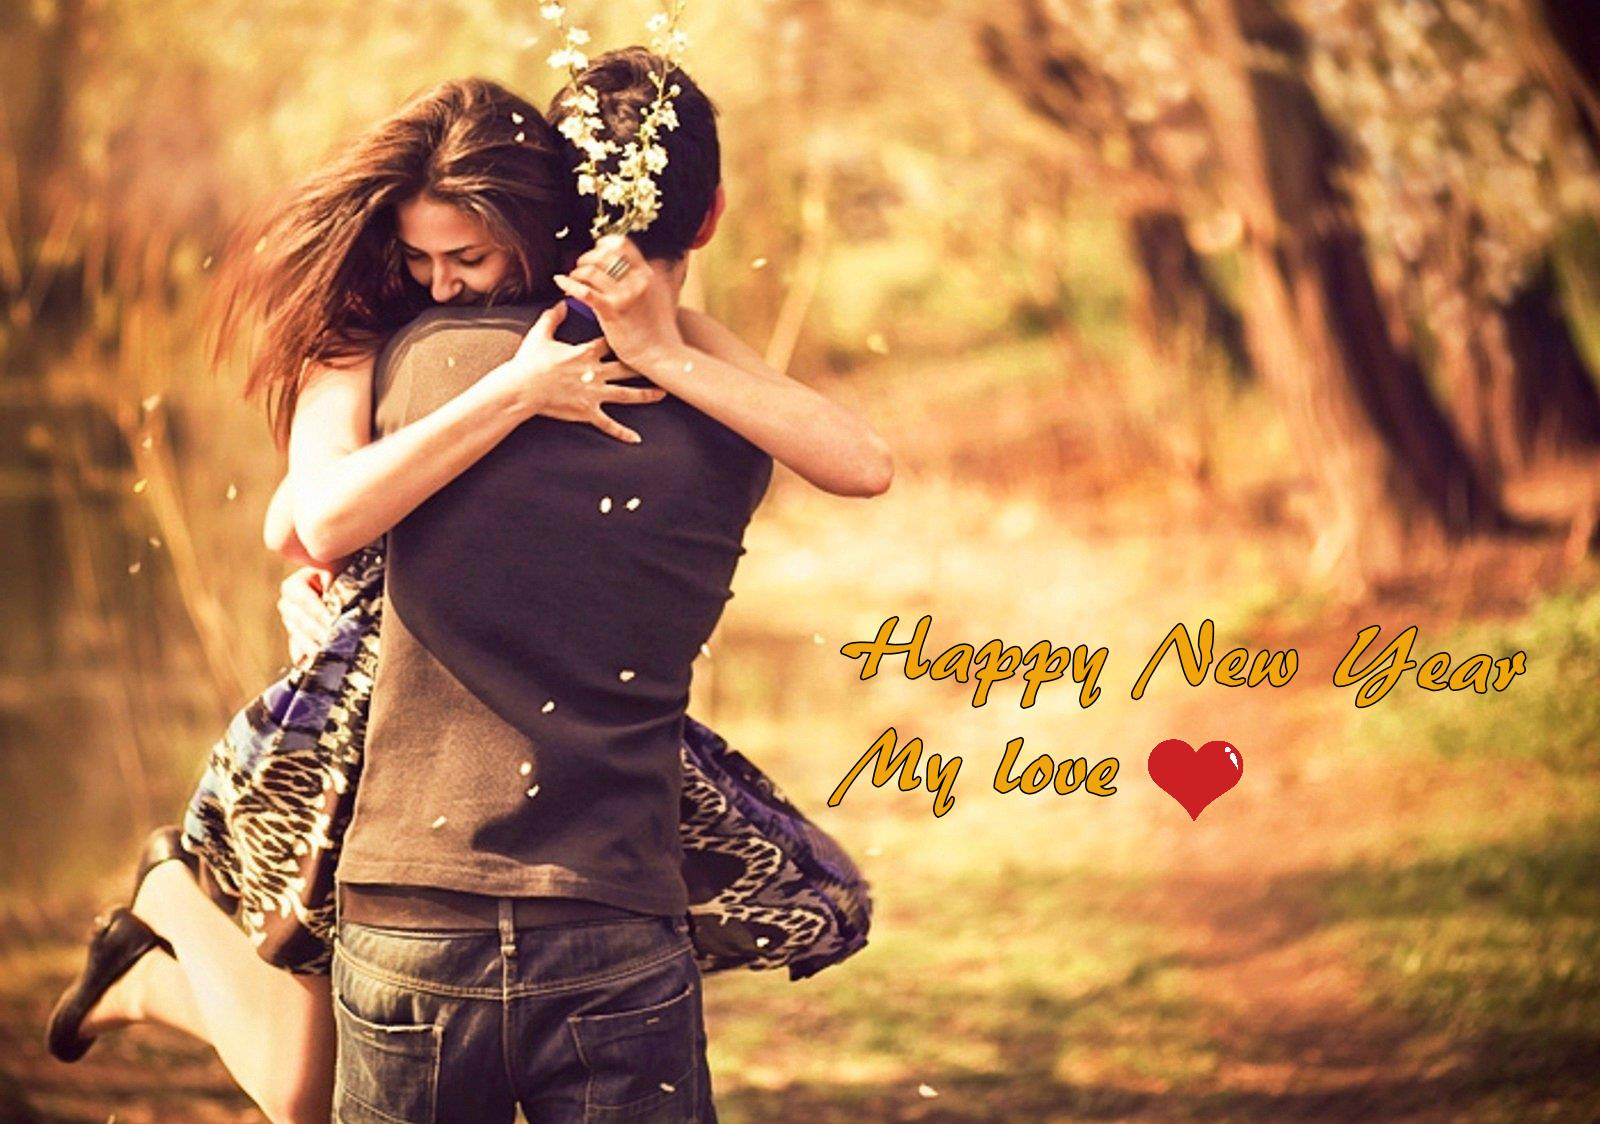 Happy New Year 2018 Couple Wallpaper